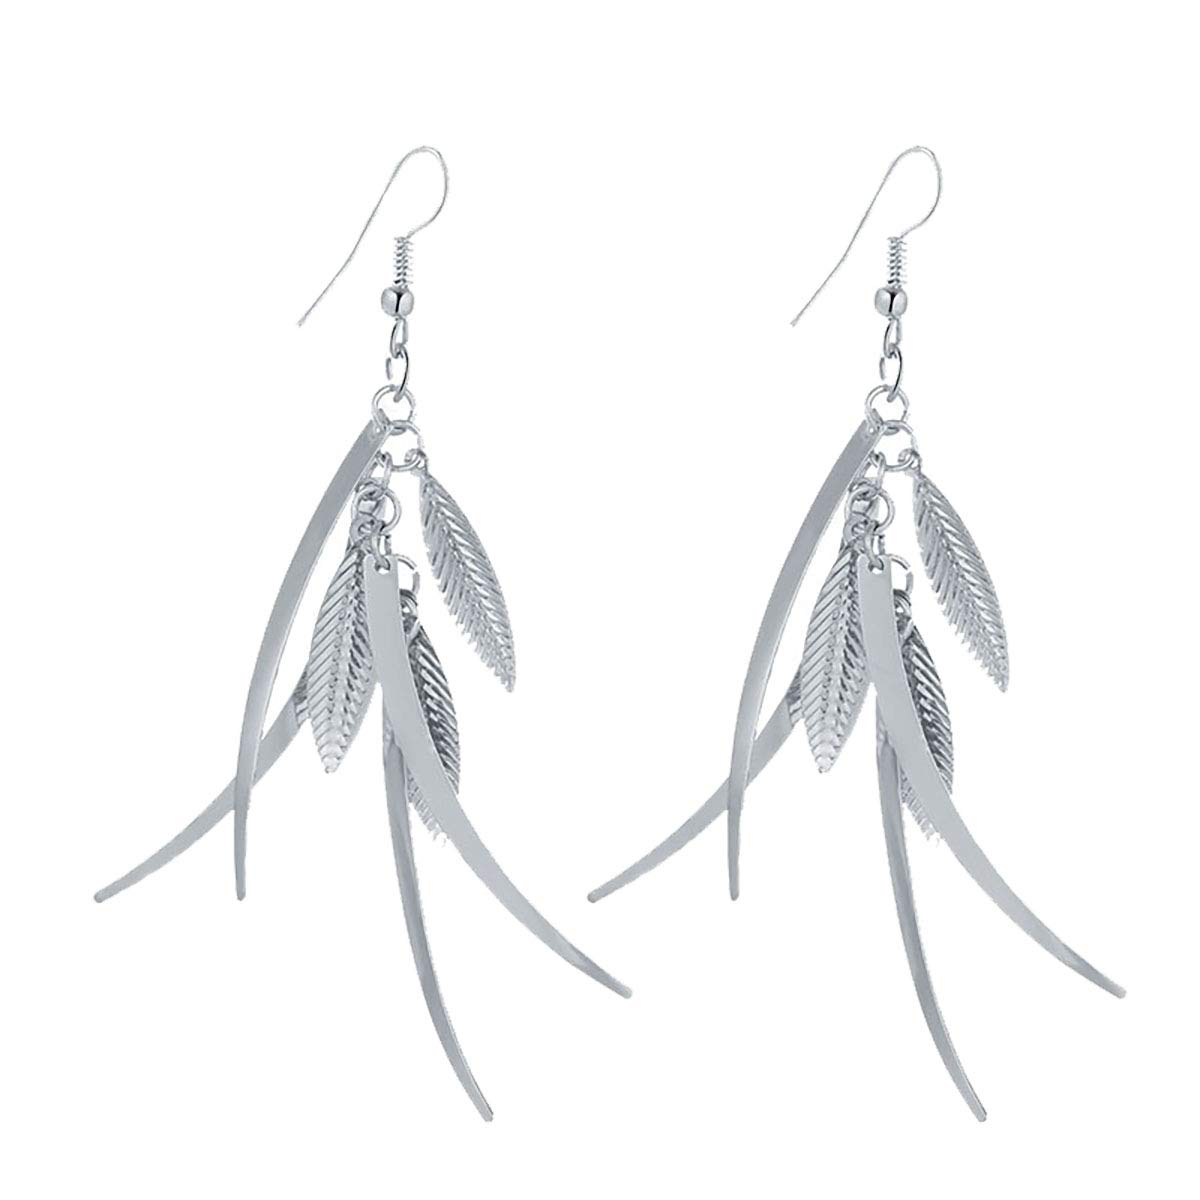 IDB Delicate Filigree Dangle Triple Feather Drop Hook Earrings Available in Silver and Gold Tones